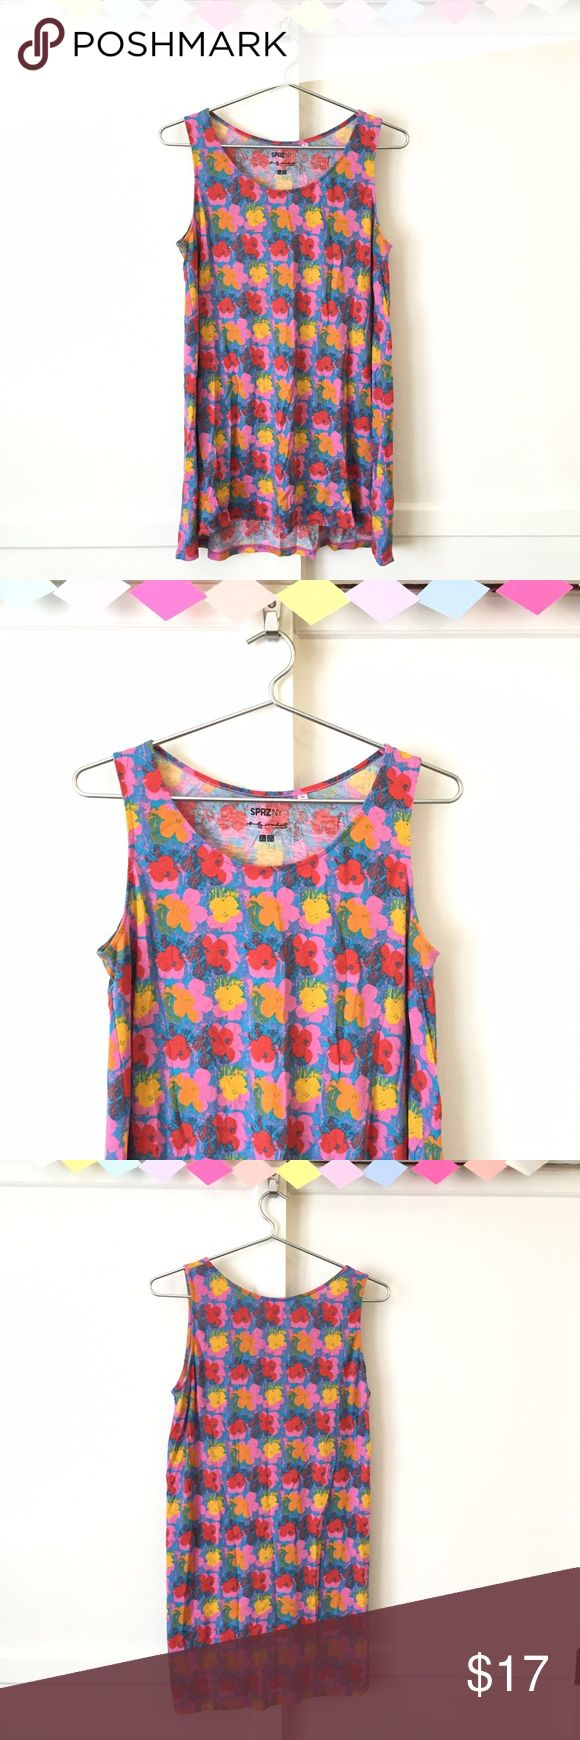 """Andy Warhol Flower Tank Top Andy Warhol Flower Tank Top. A really fun & brightly colored tank top from SPR2NY. With Andy Warhol floral print. This is a great tank to wear over your favorite leggings. It was just a bit too short for my#tallbitch self, so I'm putting it out there for a lucky lady! Shoulders: 12"""" Chest: 42"""" Length: 30.5"""" UNIQLO Tops Tank Tops"""